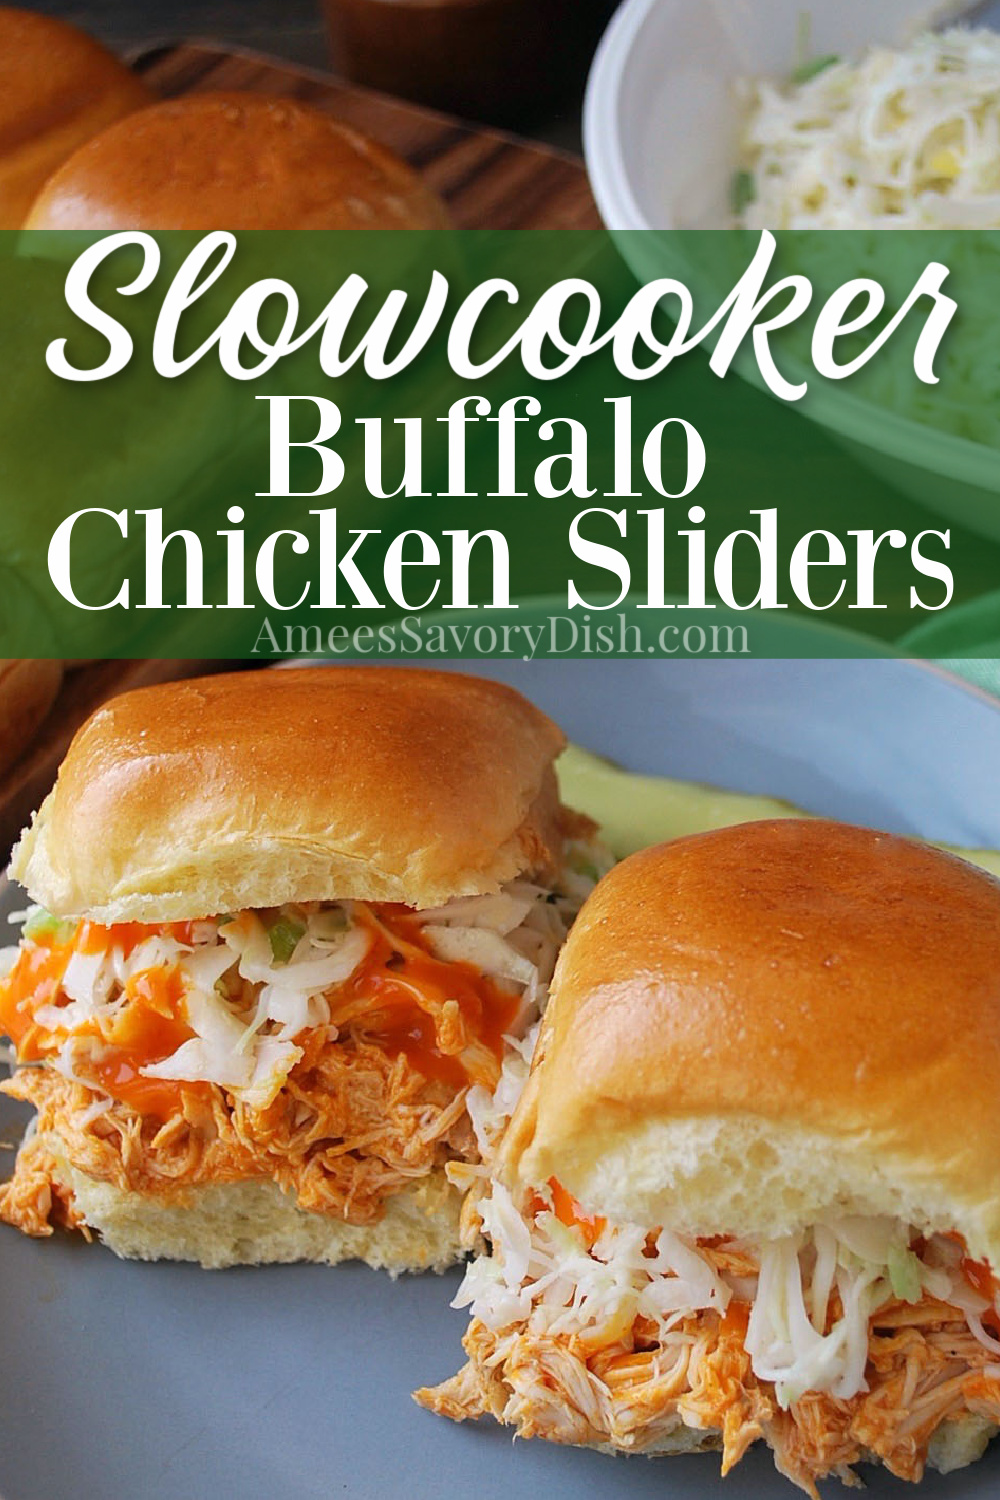 Five minutes of prep is all you need to make these delicious buffalo chicken sliders in the slow cooker using frozen (or fresh) boneless chicken breasts. Using only a few simple ingredients, this delicious meal cooks away while you go about your day! #buffalochicken #buffalosliders #chicken #buffalochickensliders #partyrecipes via @Ameessavorydish